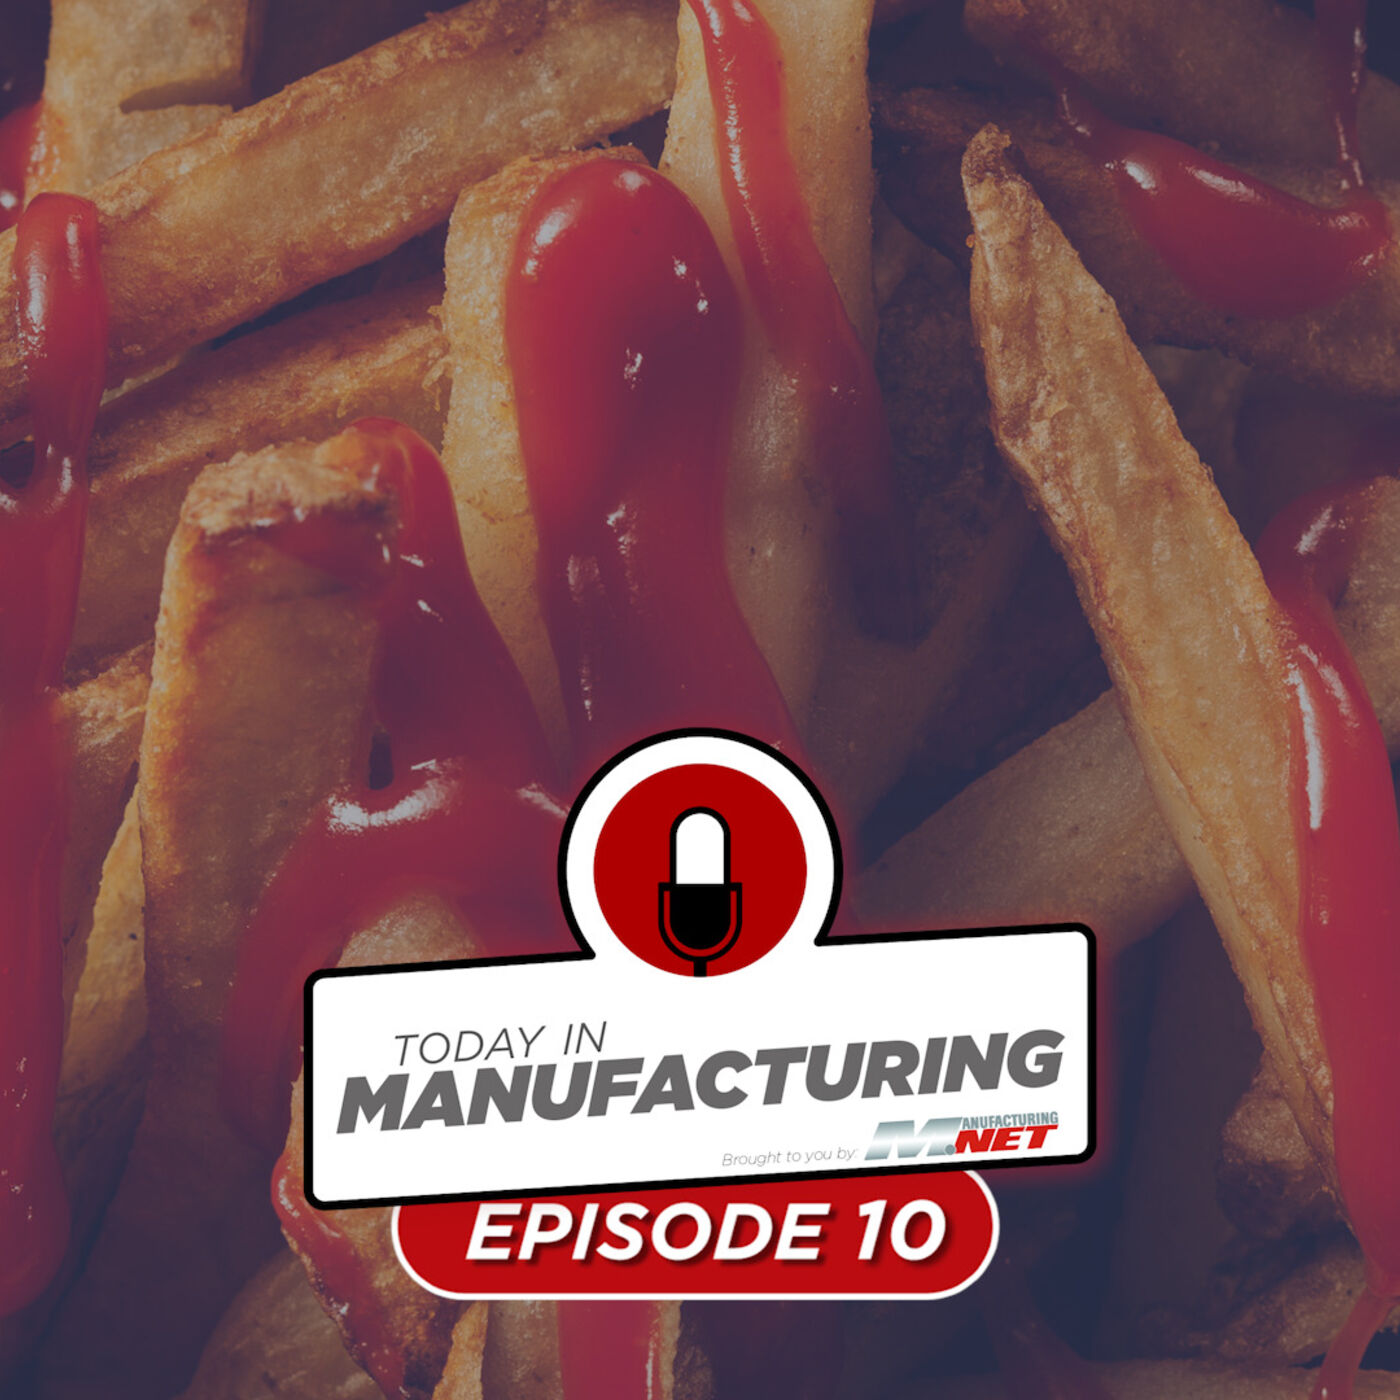 The Hottest Concept Car in a Decade, America's Ketchup Packet Crisis & a $244M Ghost Cattle Scheme | Today in Manufacturing Ep. 10